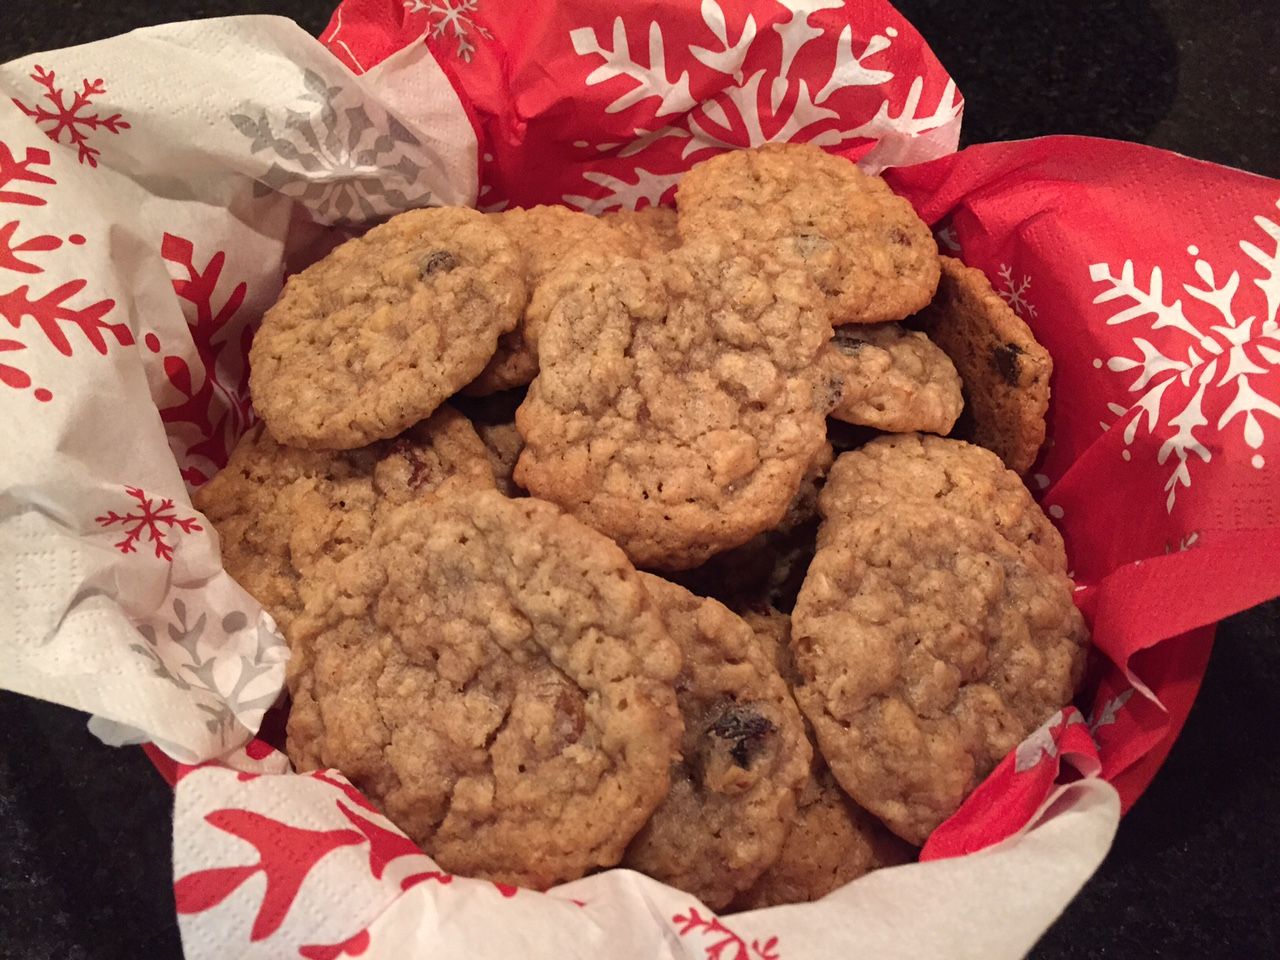 Mamaw's Oatmeal Cookies